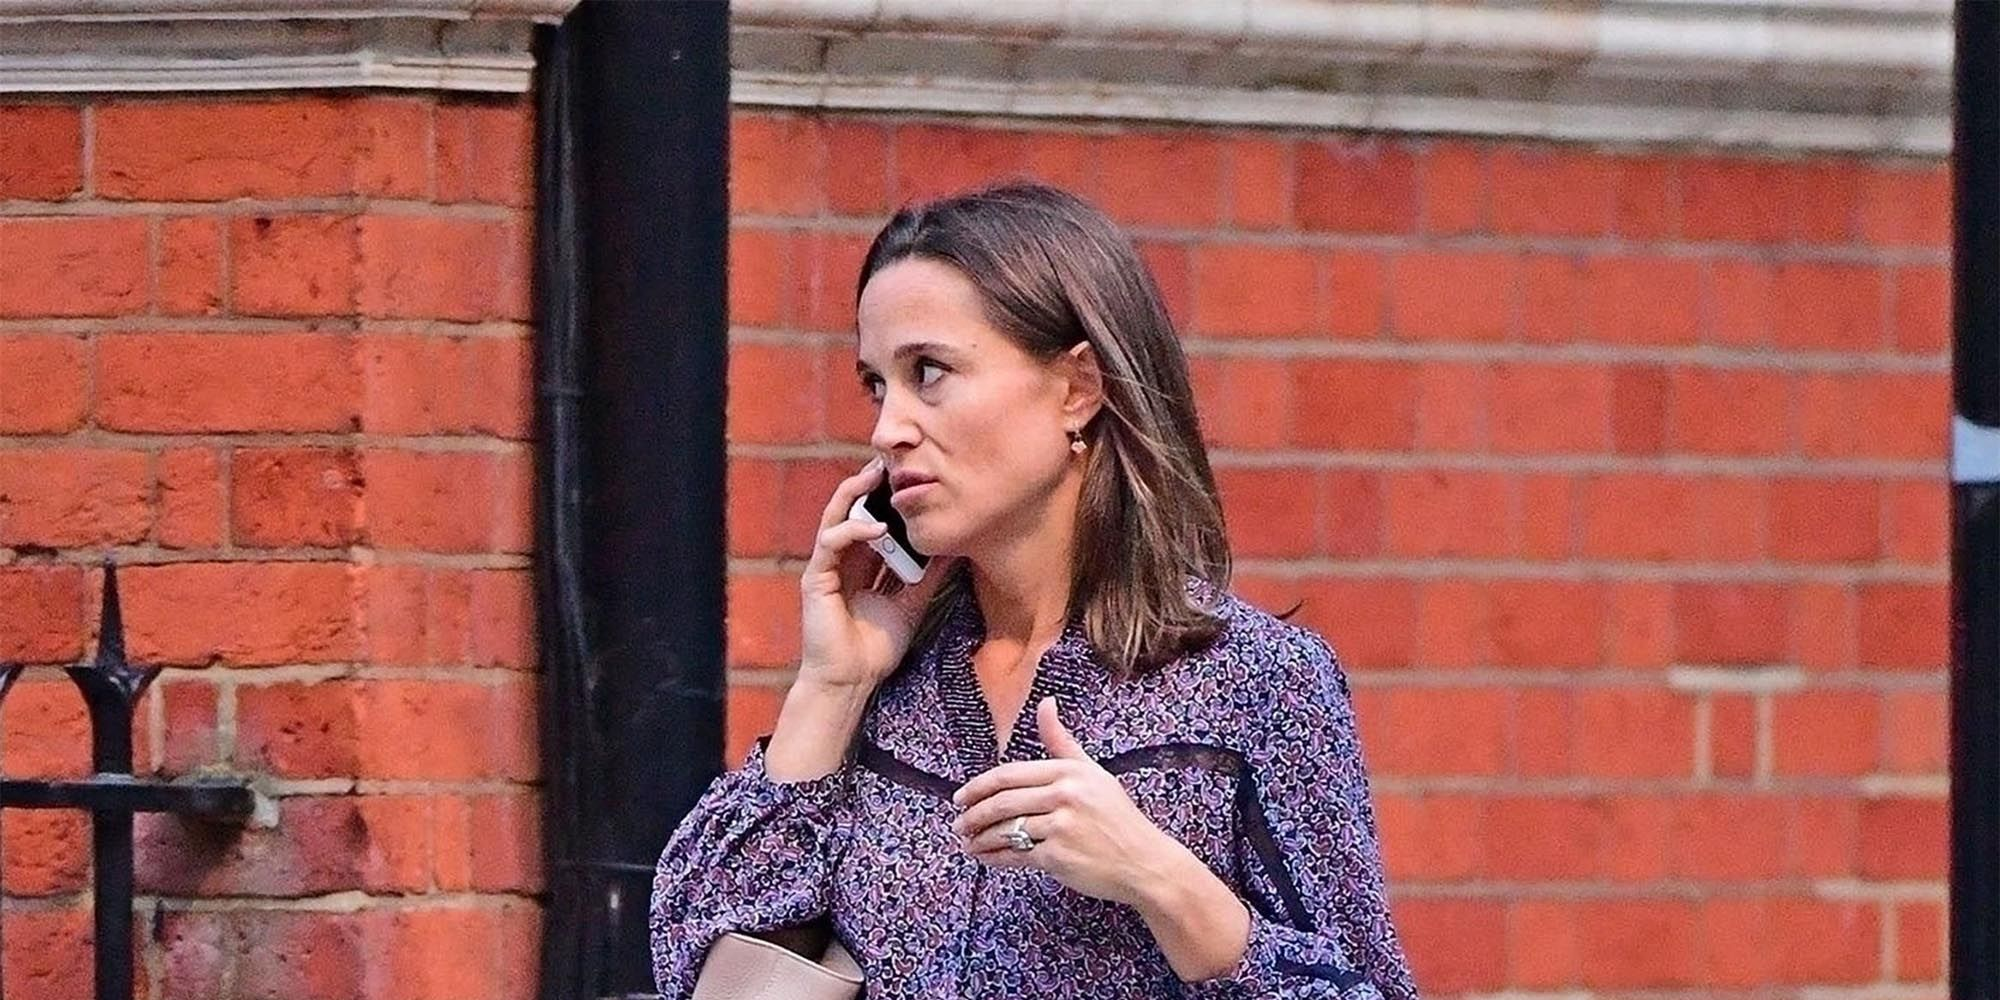 *EXCLUSIVE* Pippa Middleton spotted shopping in Chelsea